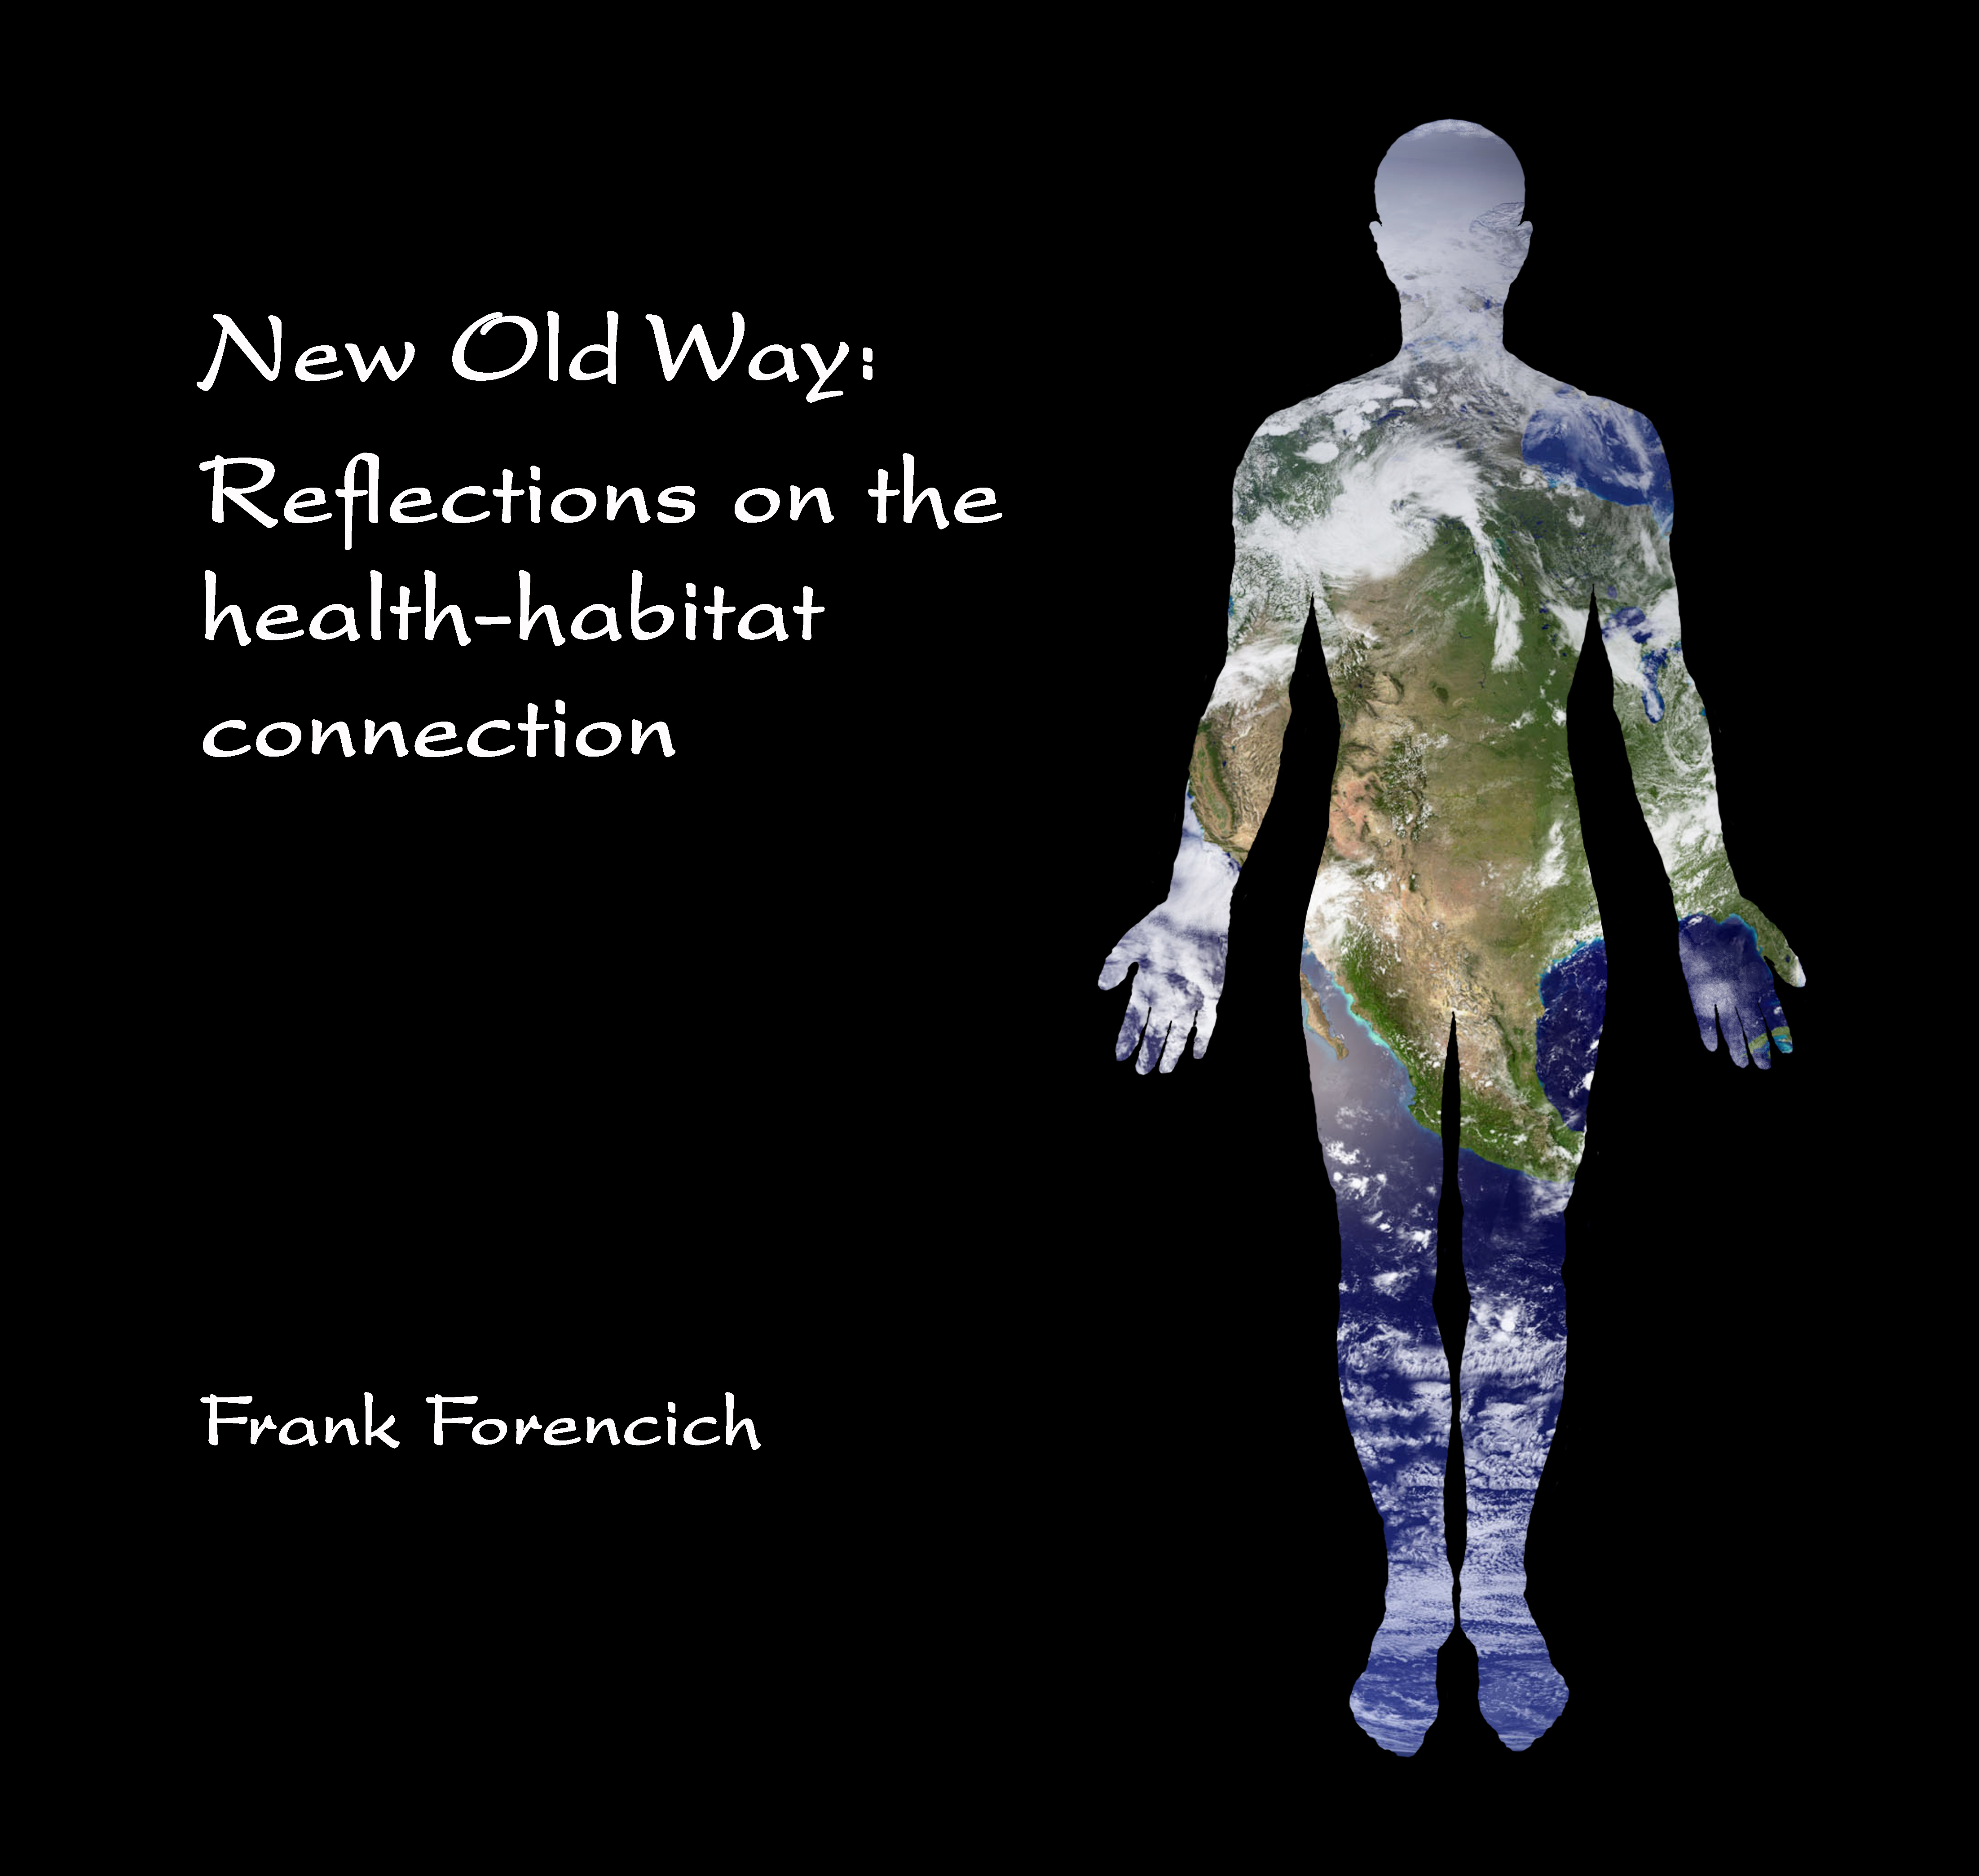 New Old Way: Reflections on the health-habitat connection | Frank Forencich